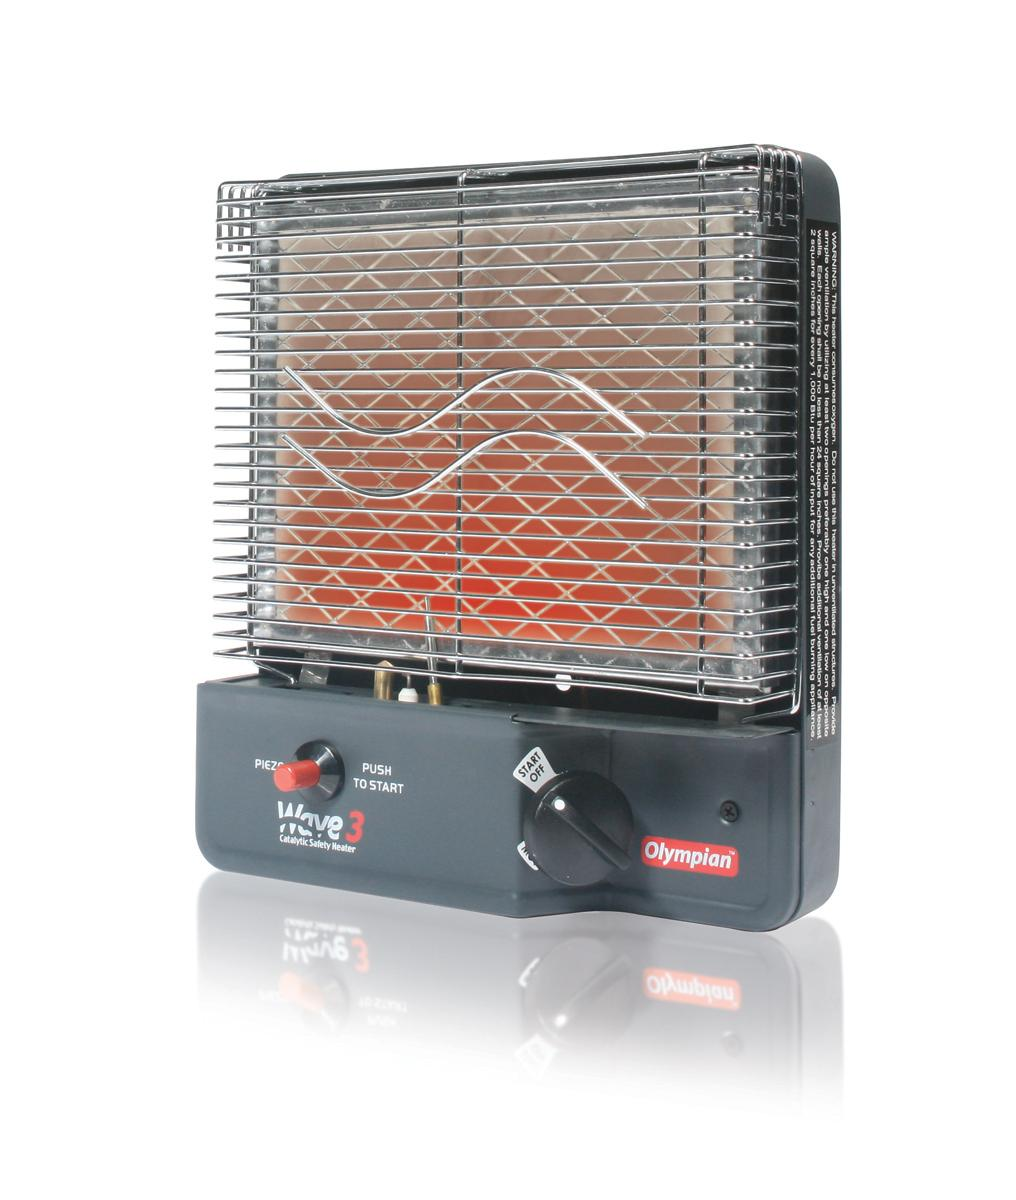 View larger  sc 1 st  Amazon.com & Amazon.com: Olympian Wave 3 LP Portable Gas Catalytic Heater by ...